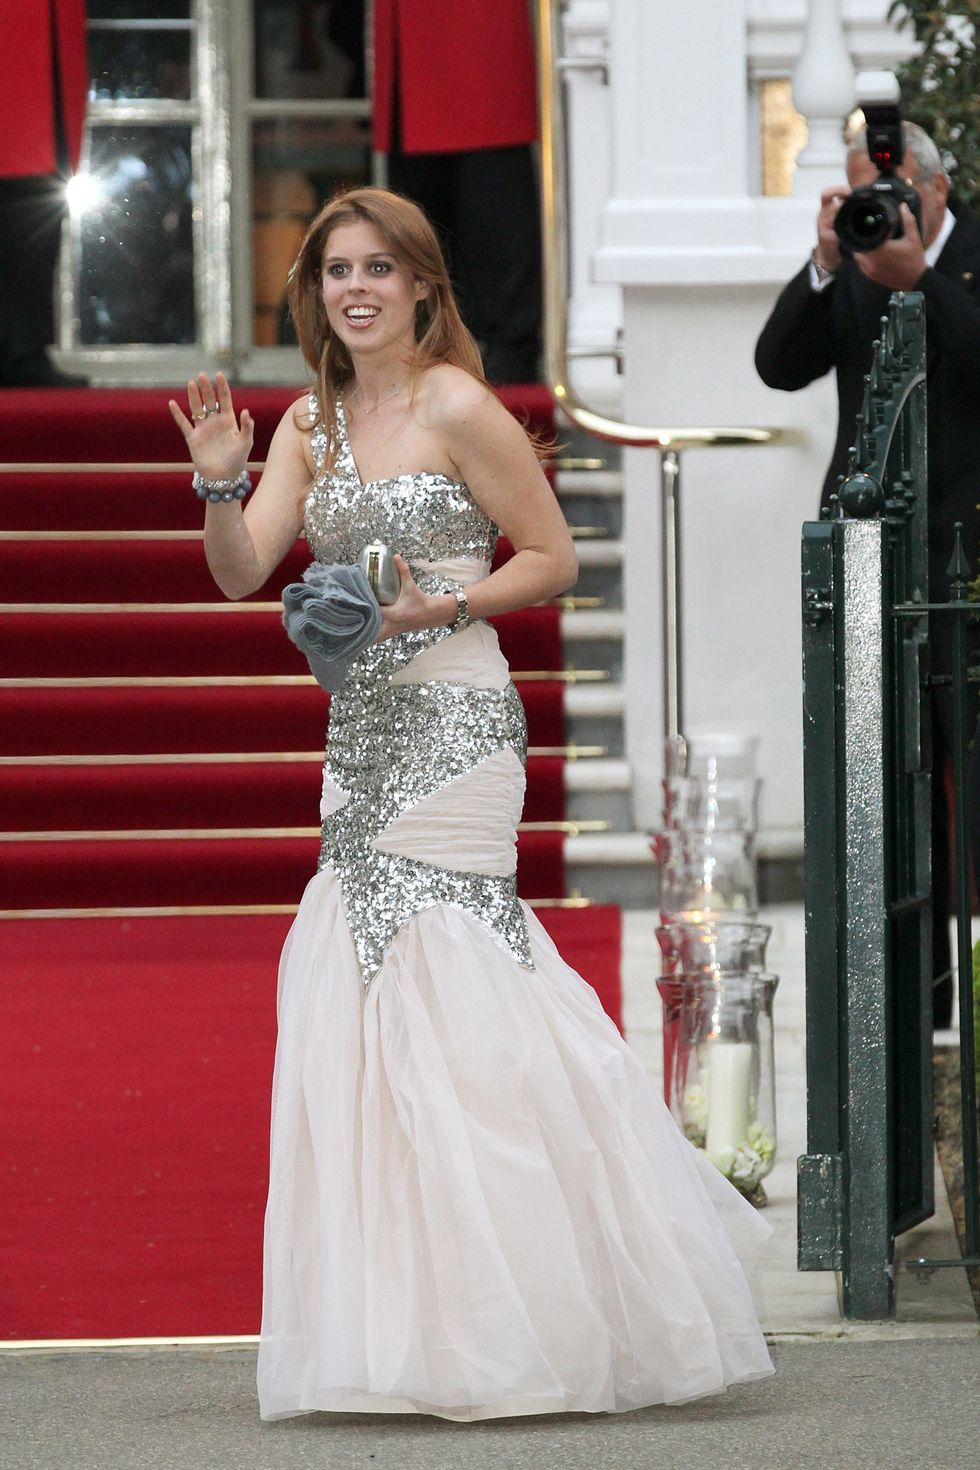 Here's How Princess Beatrice's Style Has Evolved Over the